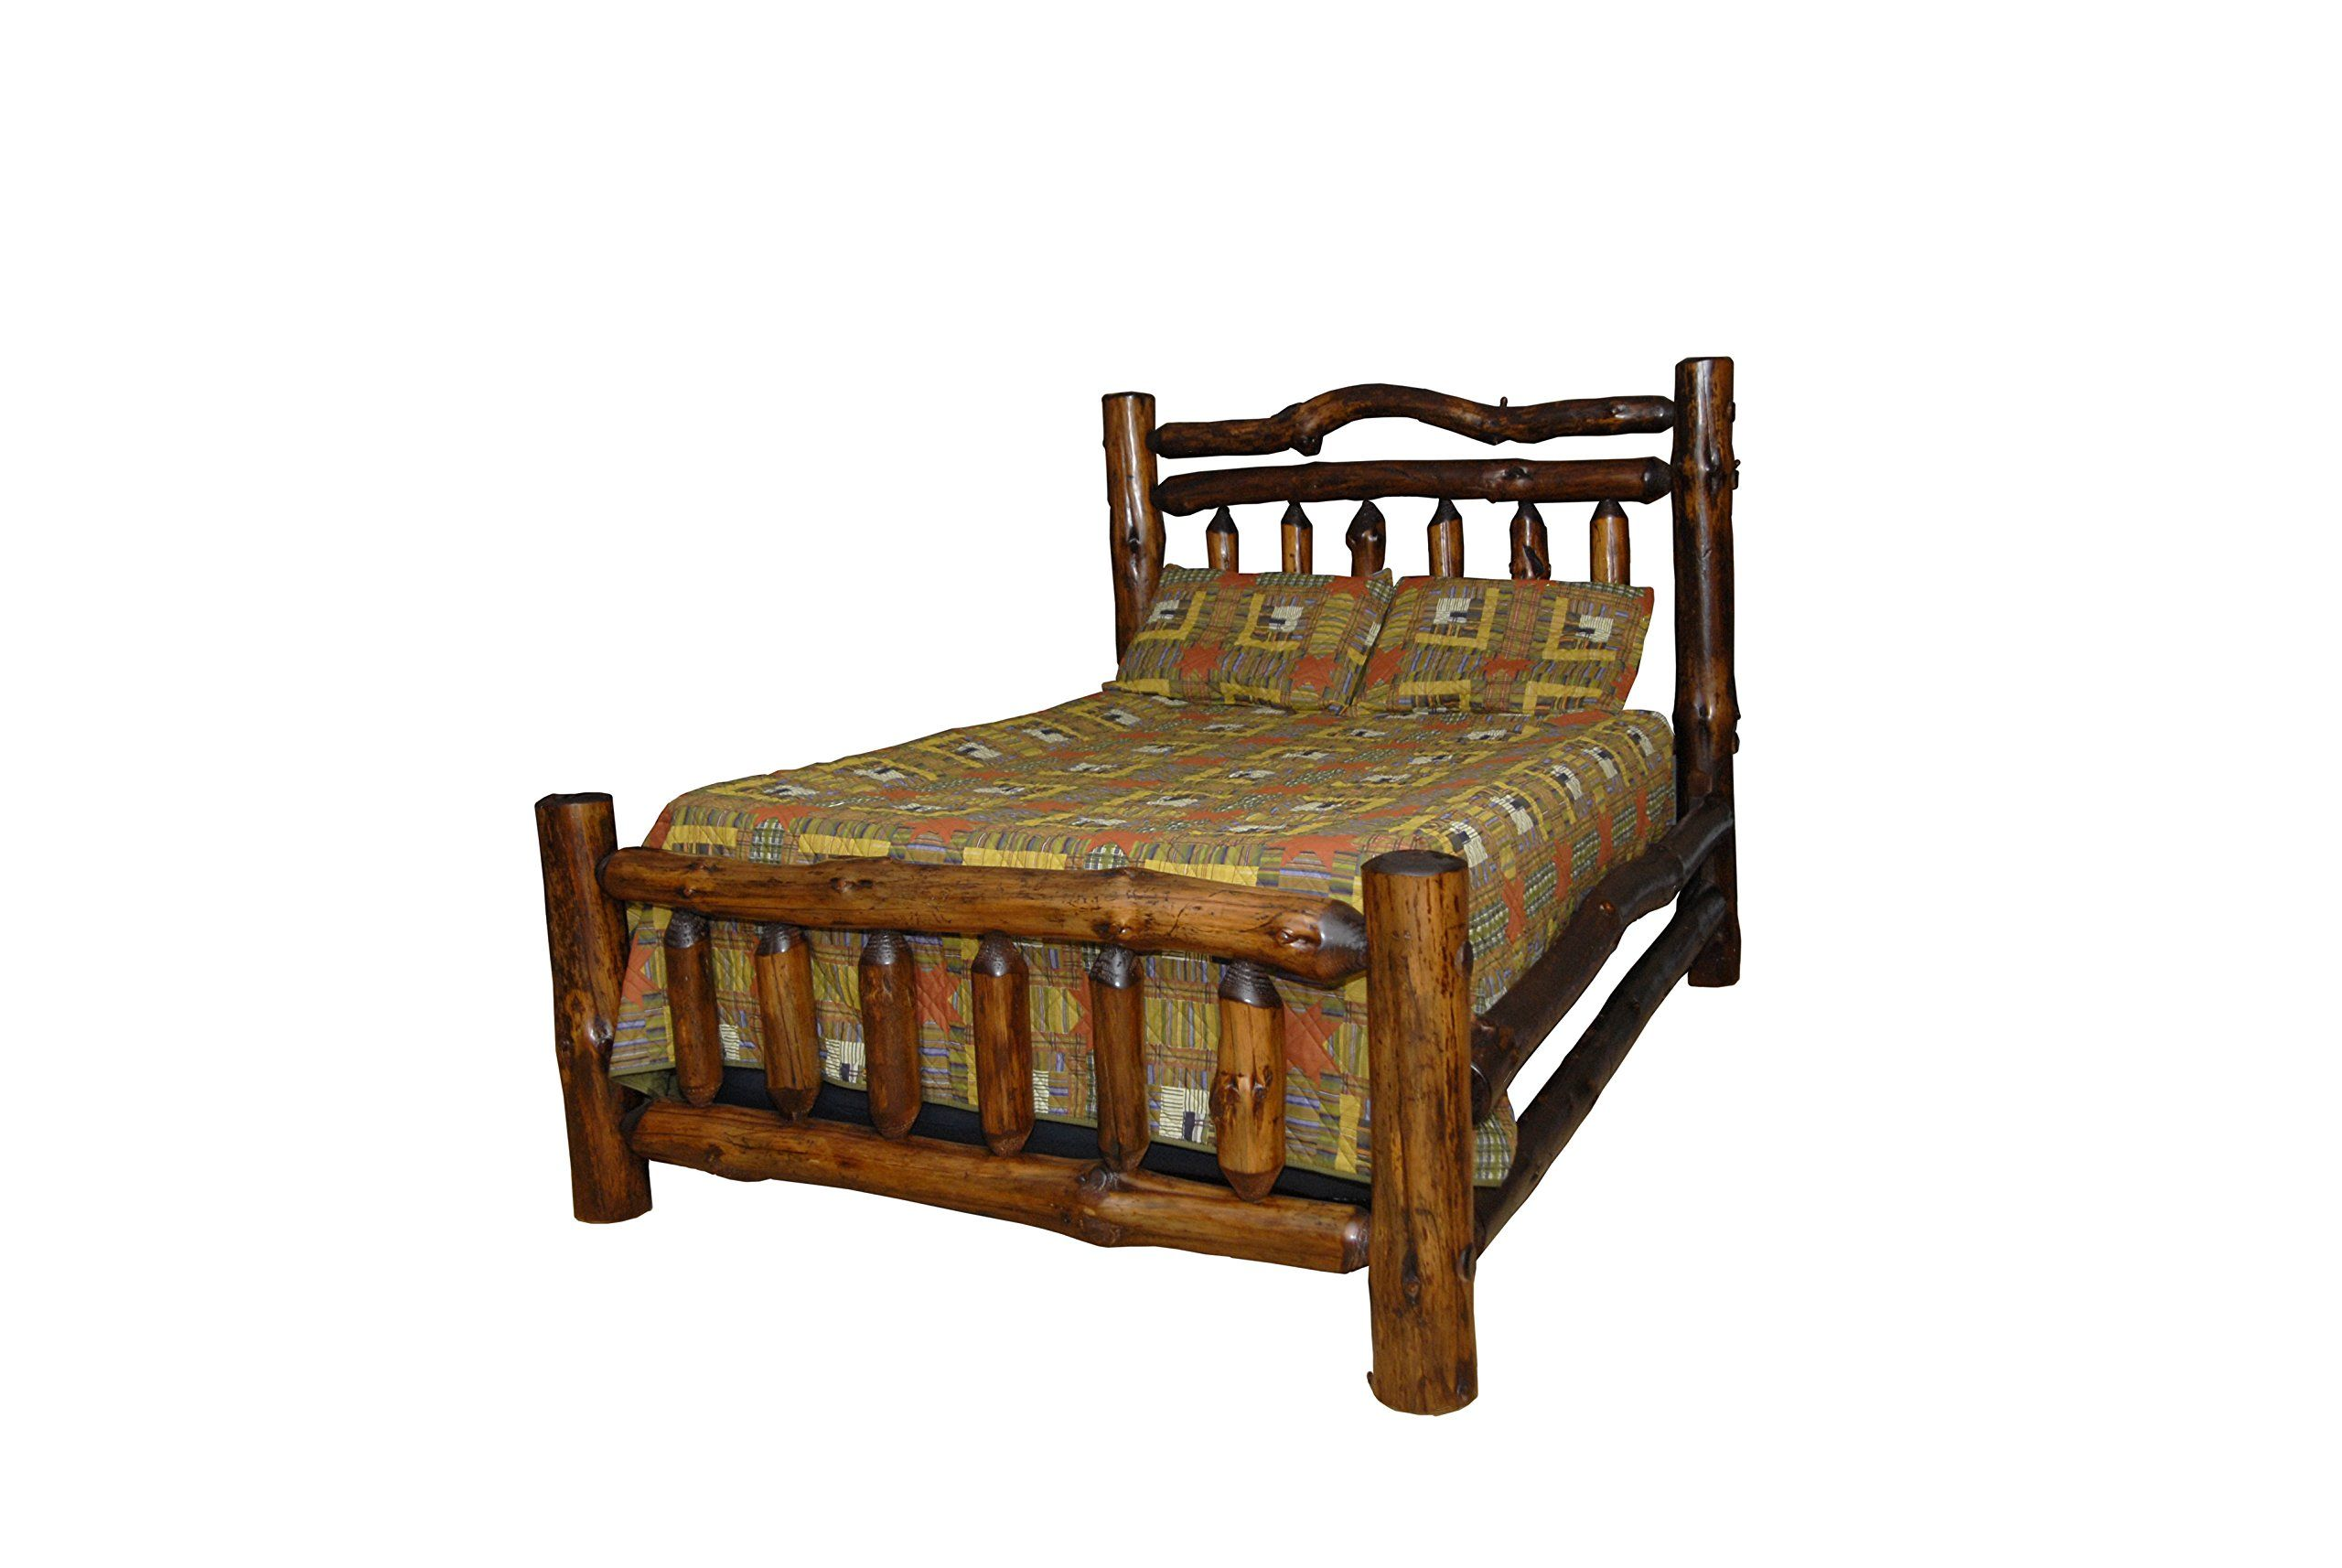 Rustic Pine Log Double Top Rail Bed King Size Amish